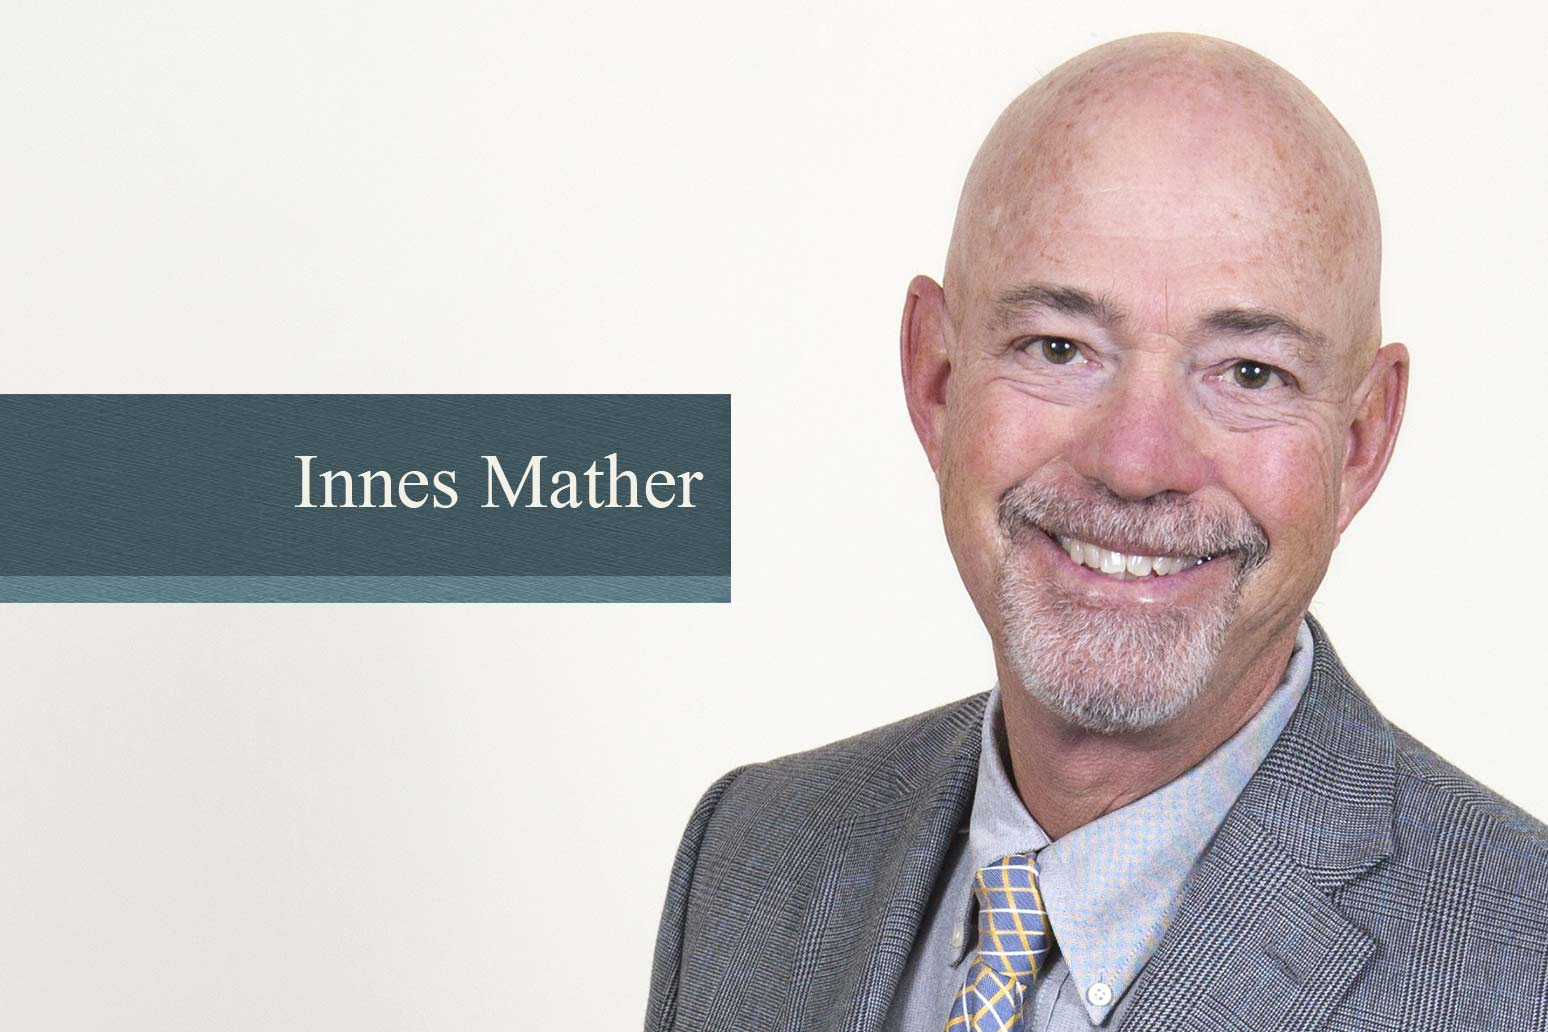 Innes-Mather